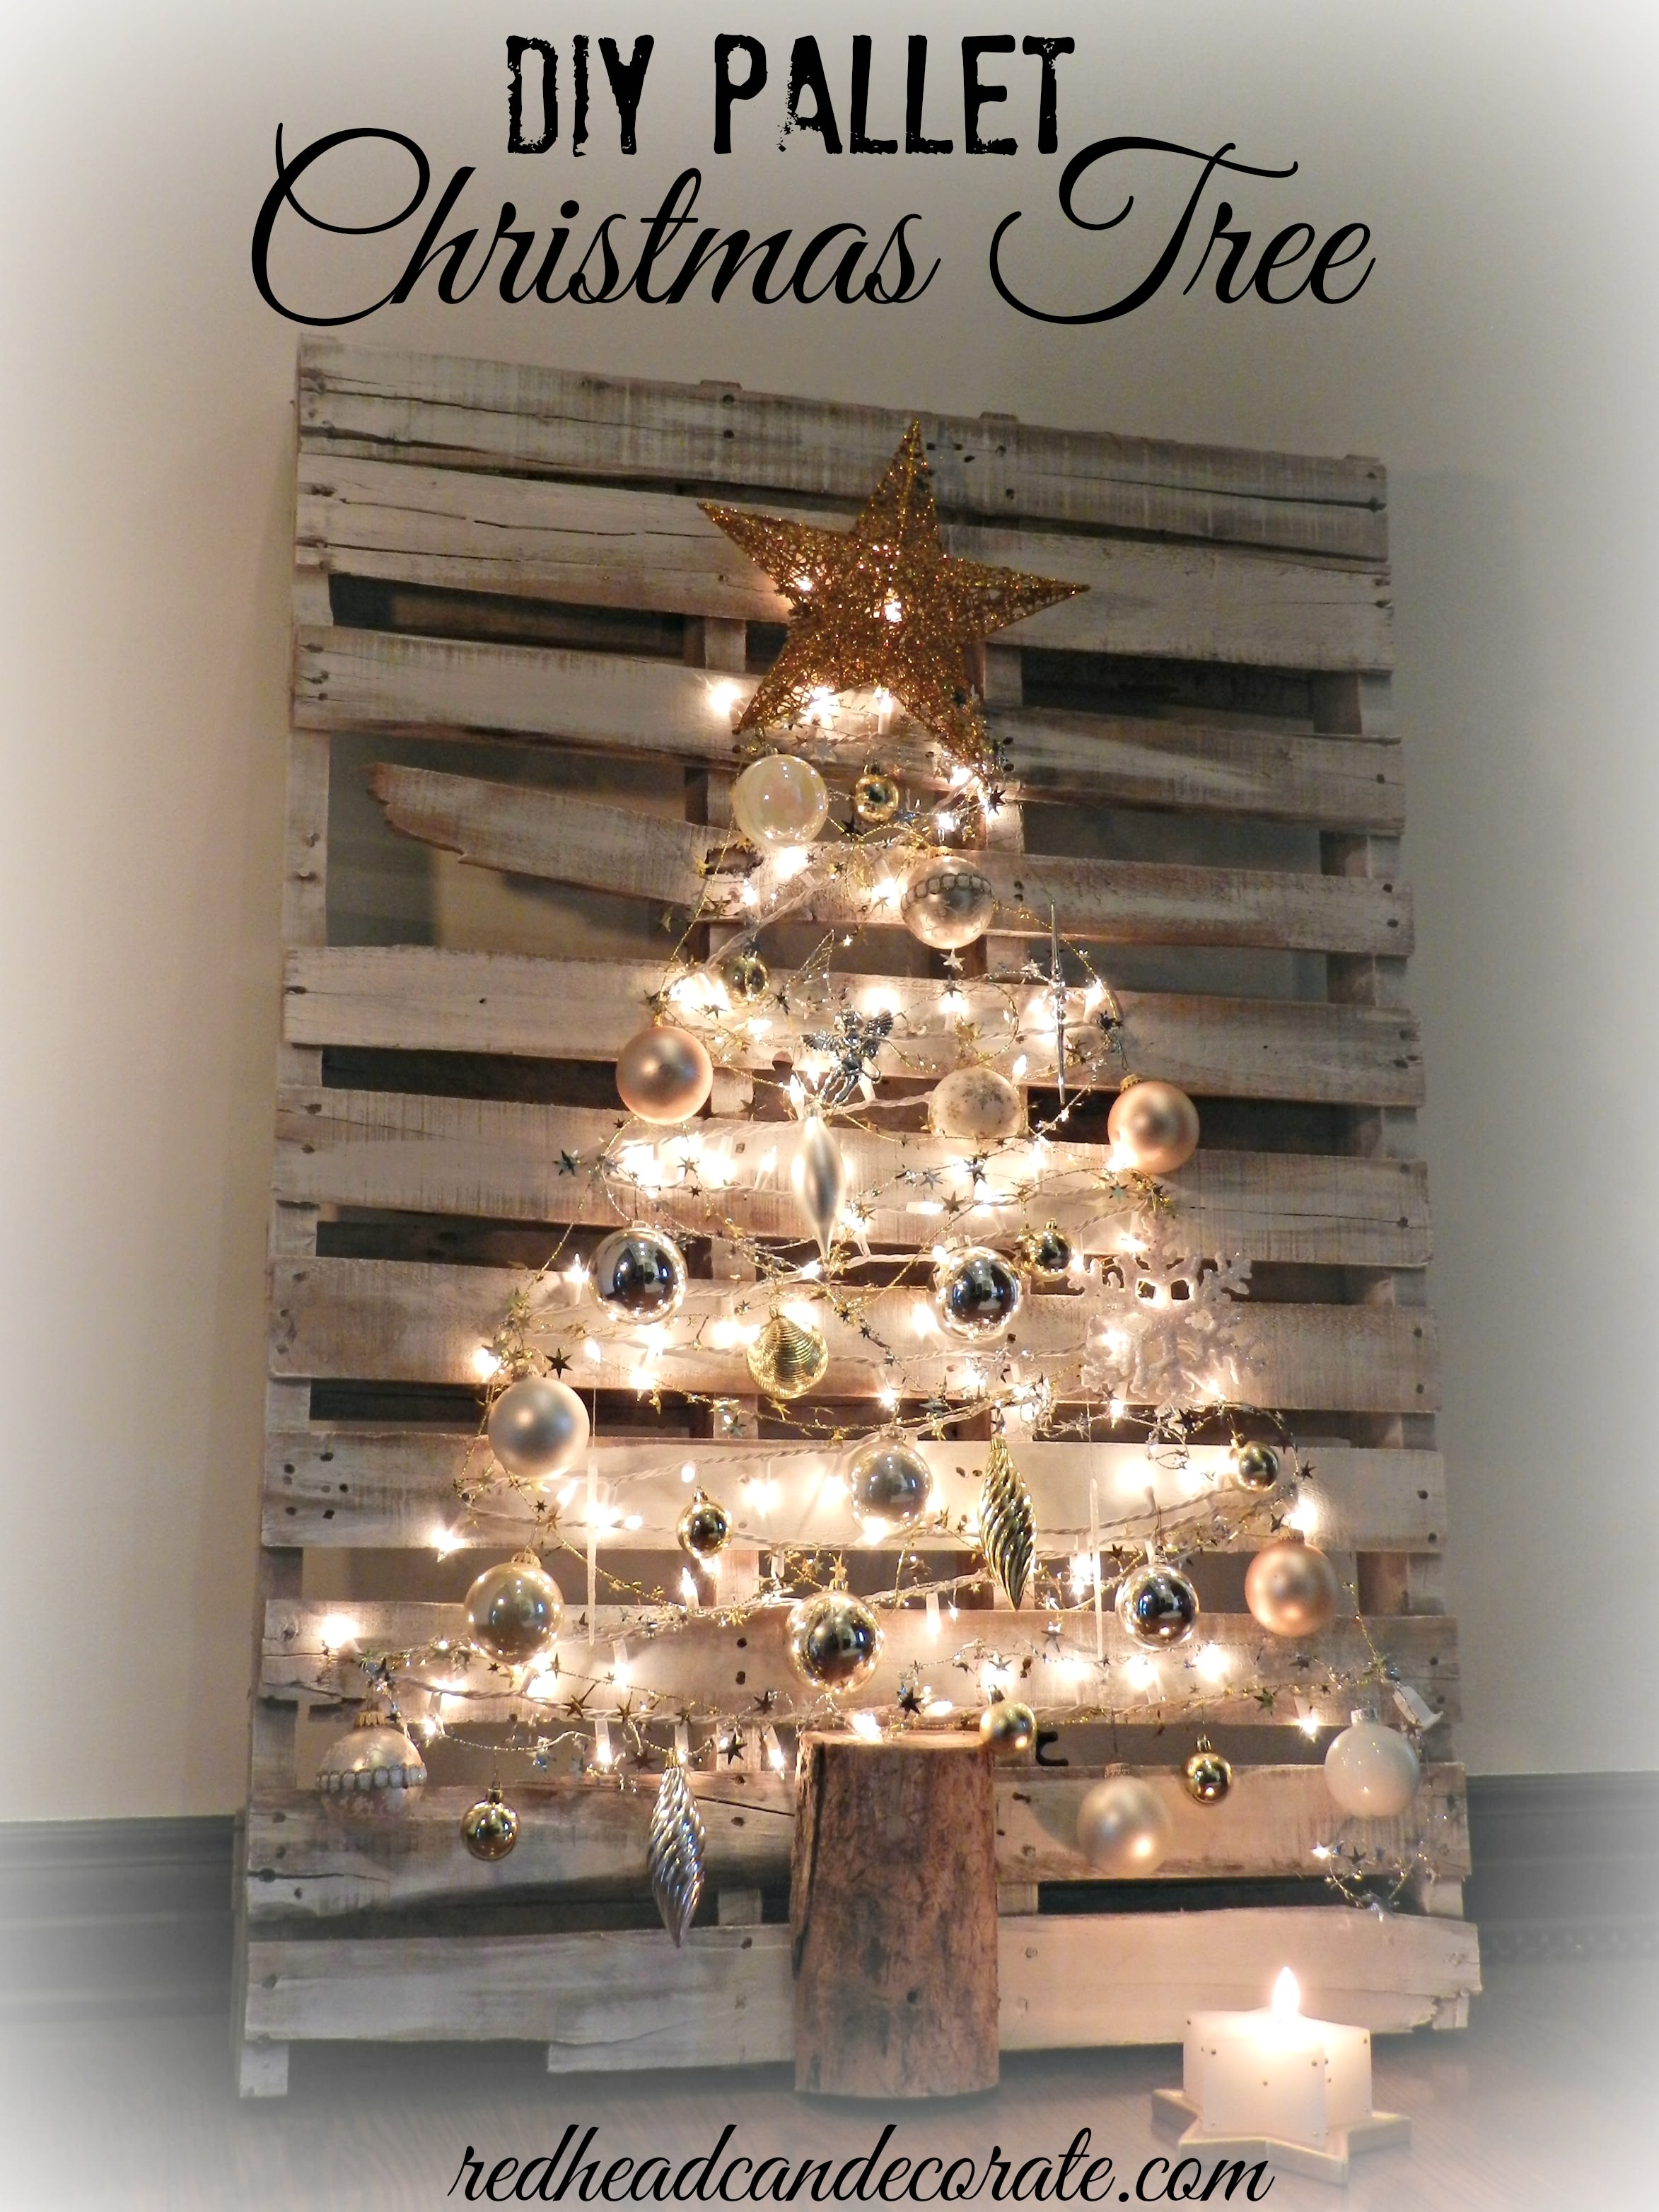 diy pallet christmas tree by redhead can decorate - Christmas Tree With Lights And Decorations